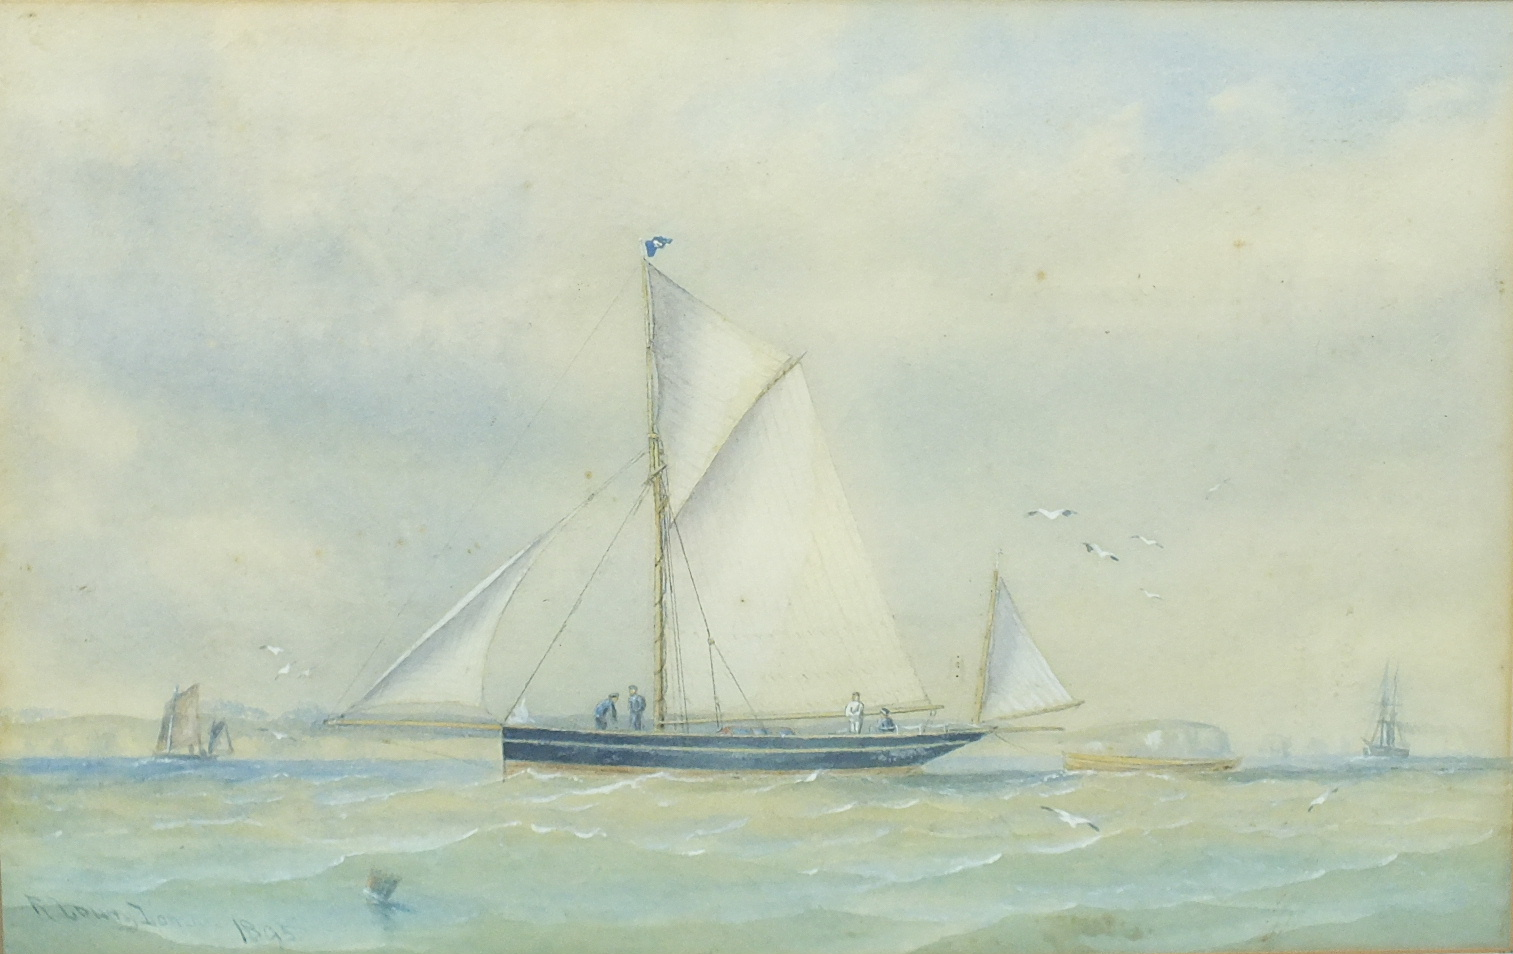 Lot 85 - R Lowry Lomax (19th/20th century) YACHT THISTLE Signed watercolour, dated 1895 and titled on label